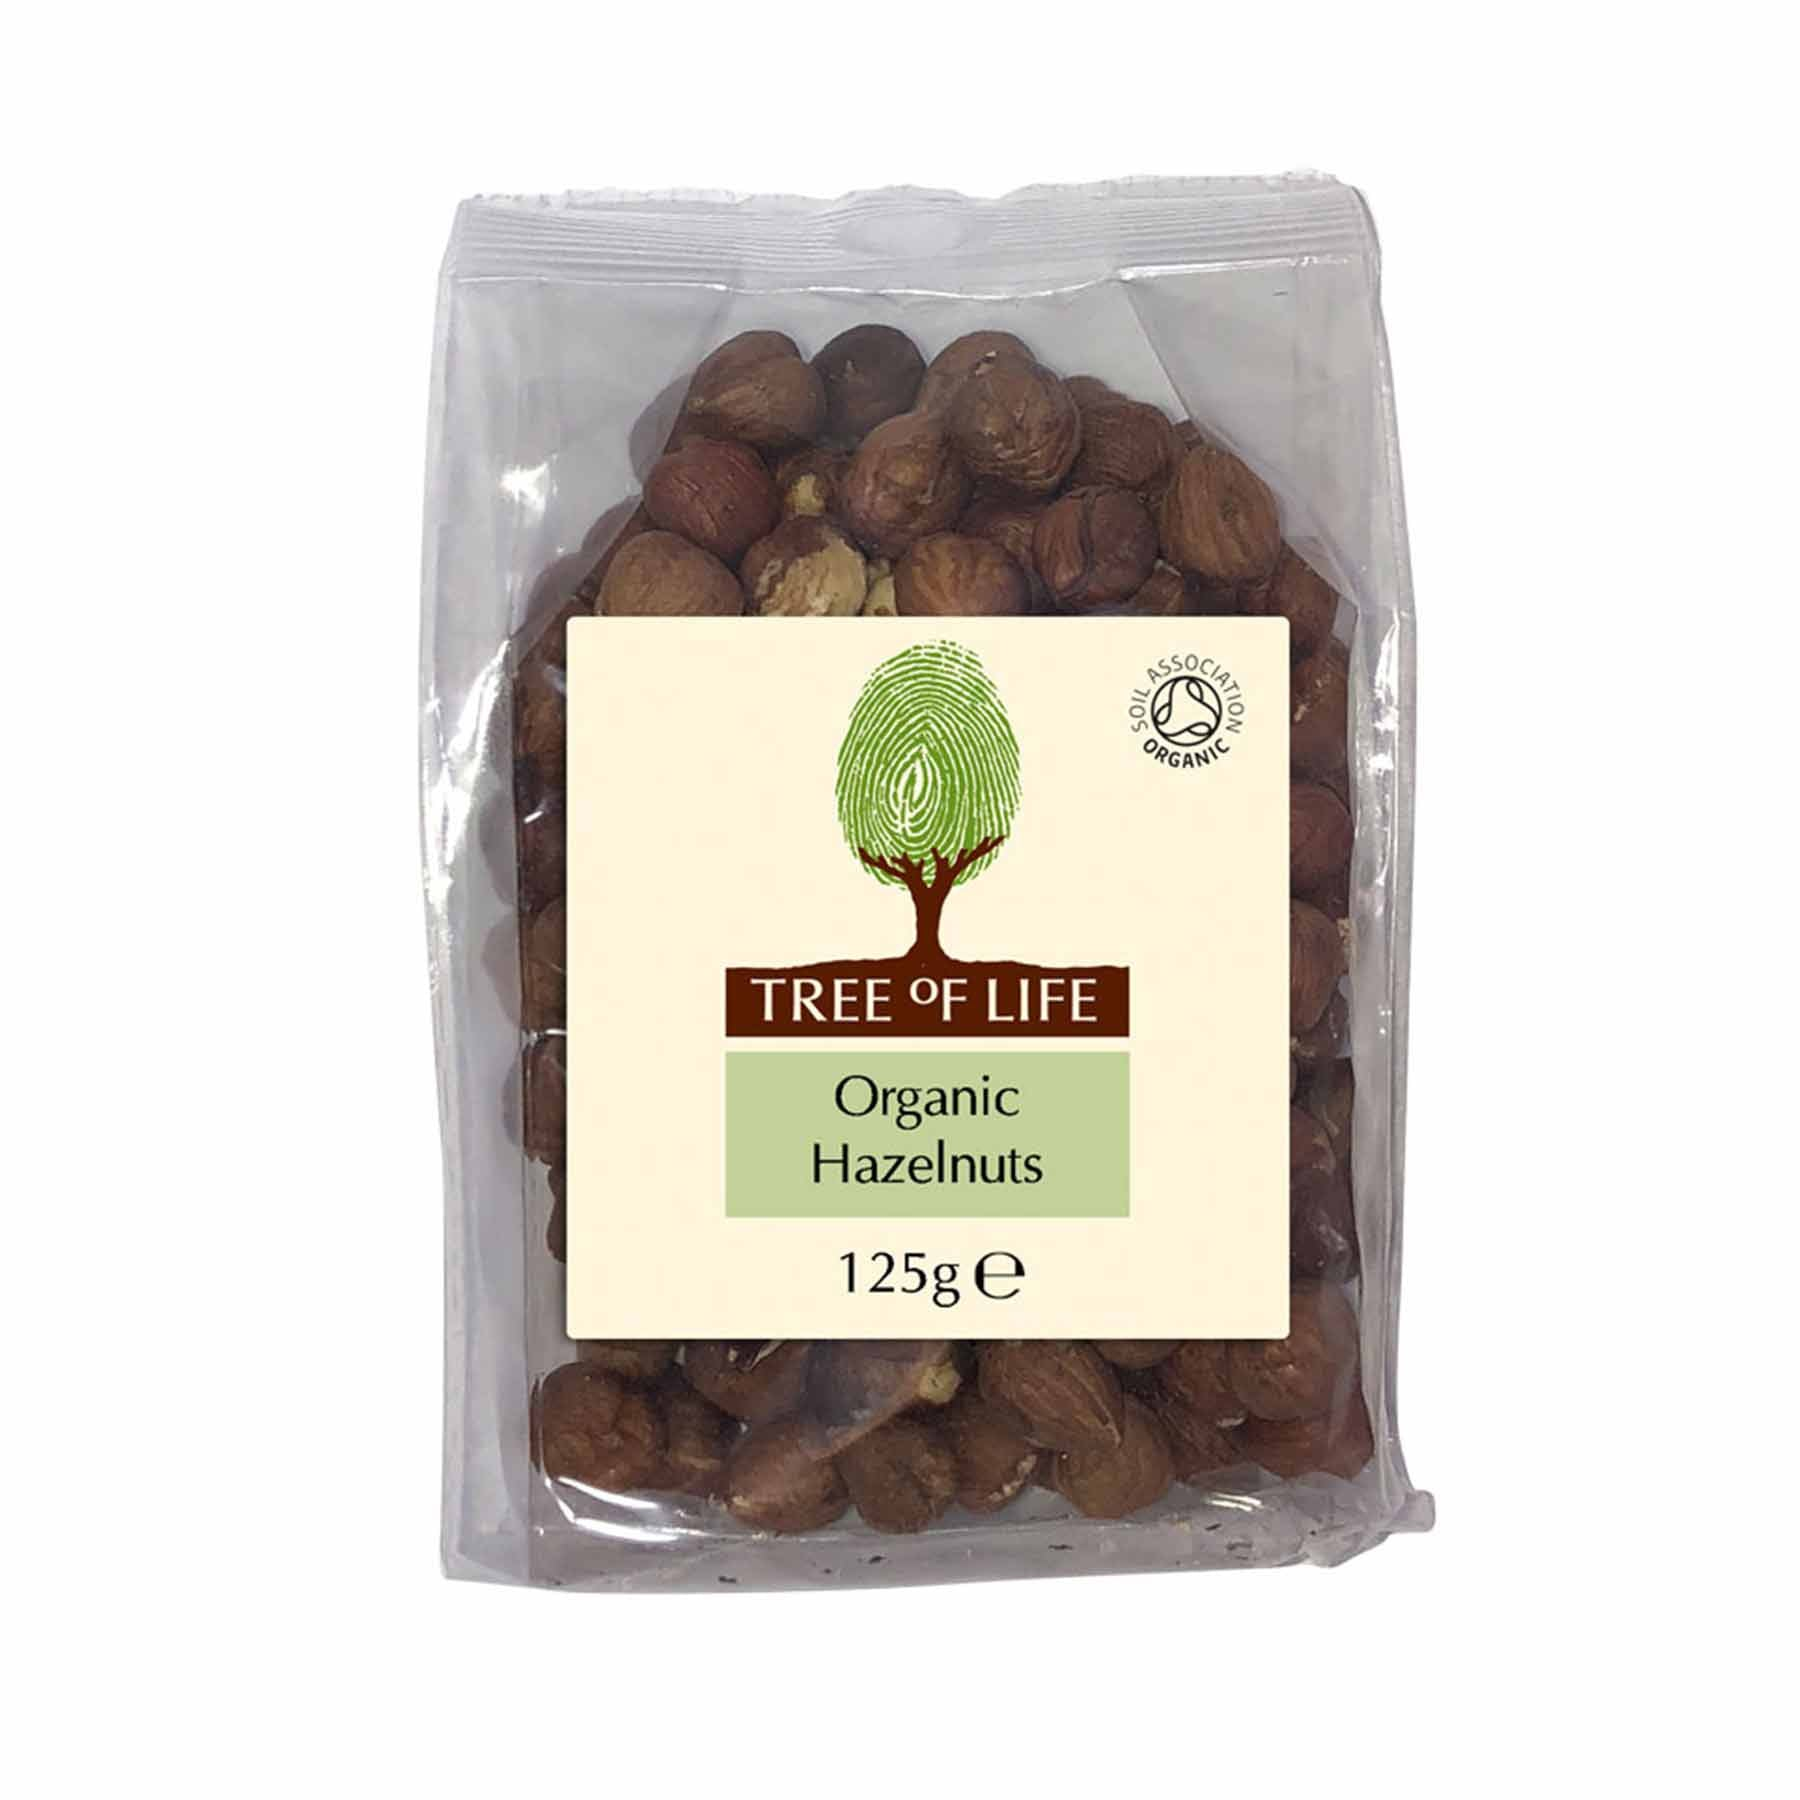 Packshot - Organic Hazelnuts by Tree of Life